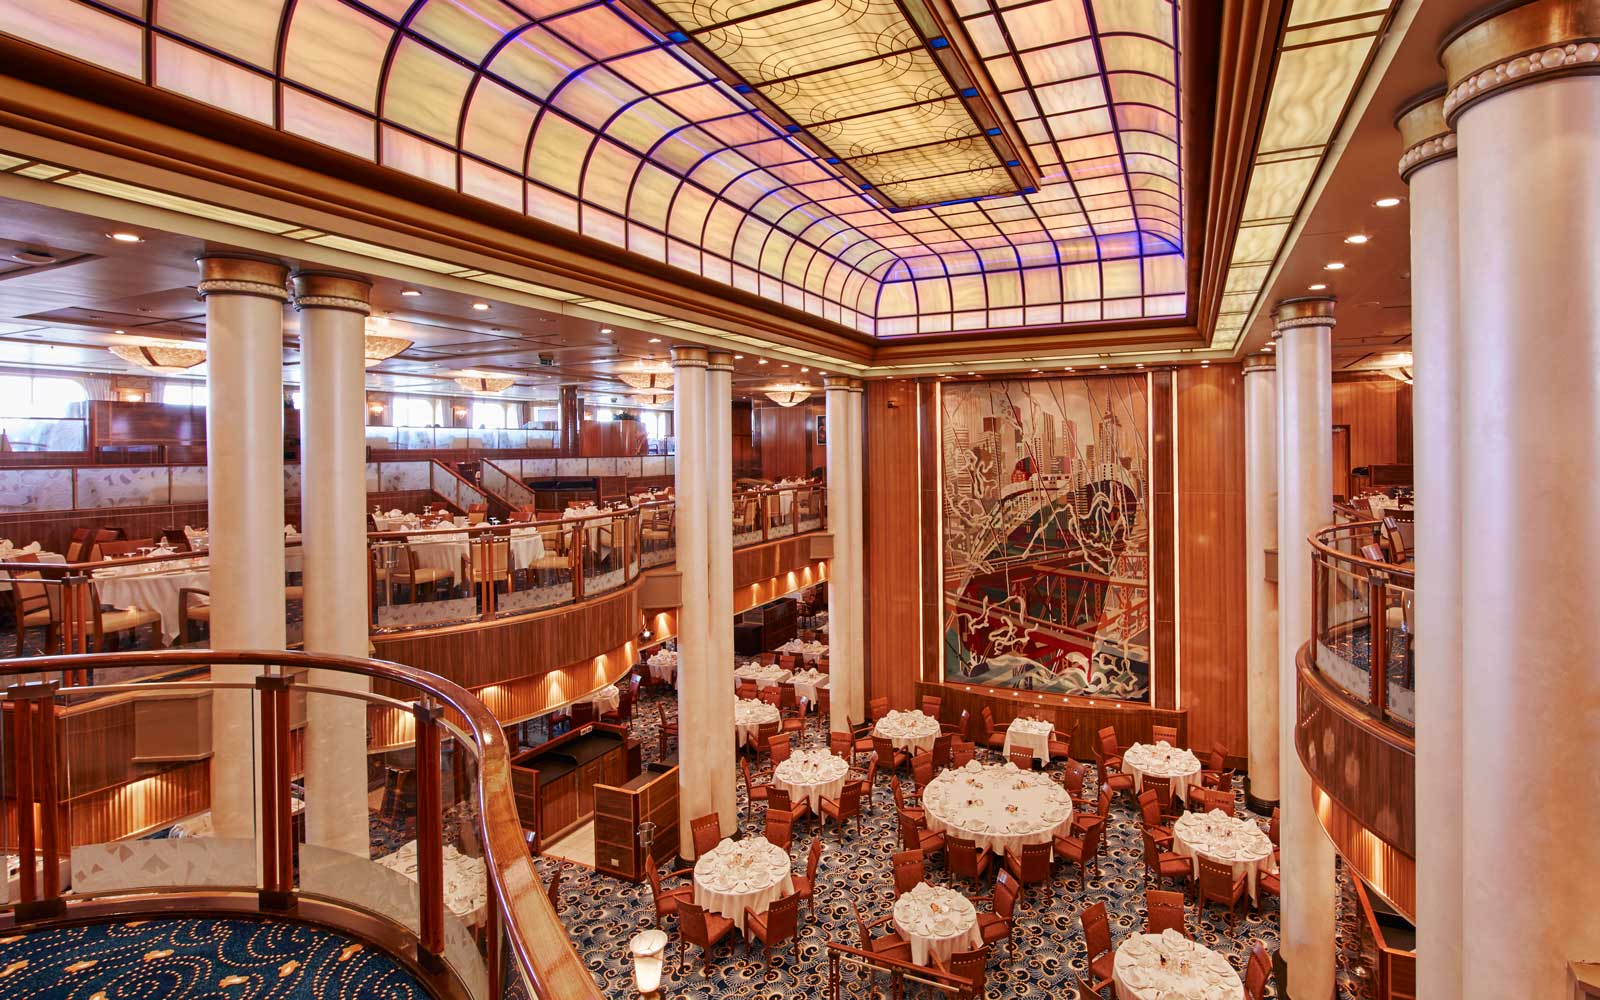 Cunard and New York Times Crossword Cruise